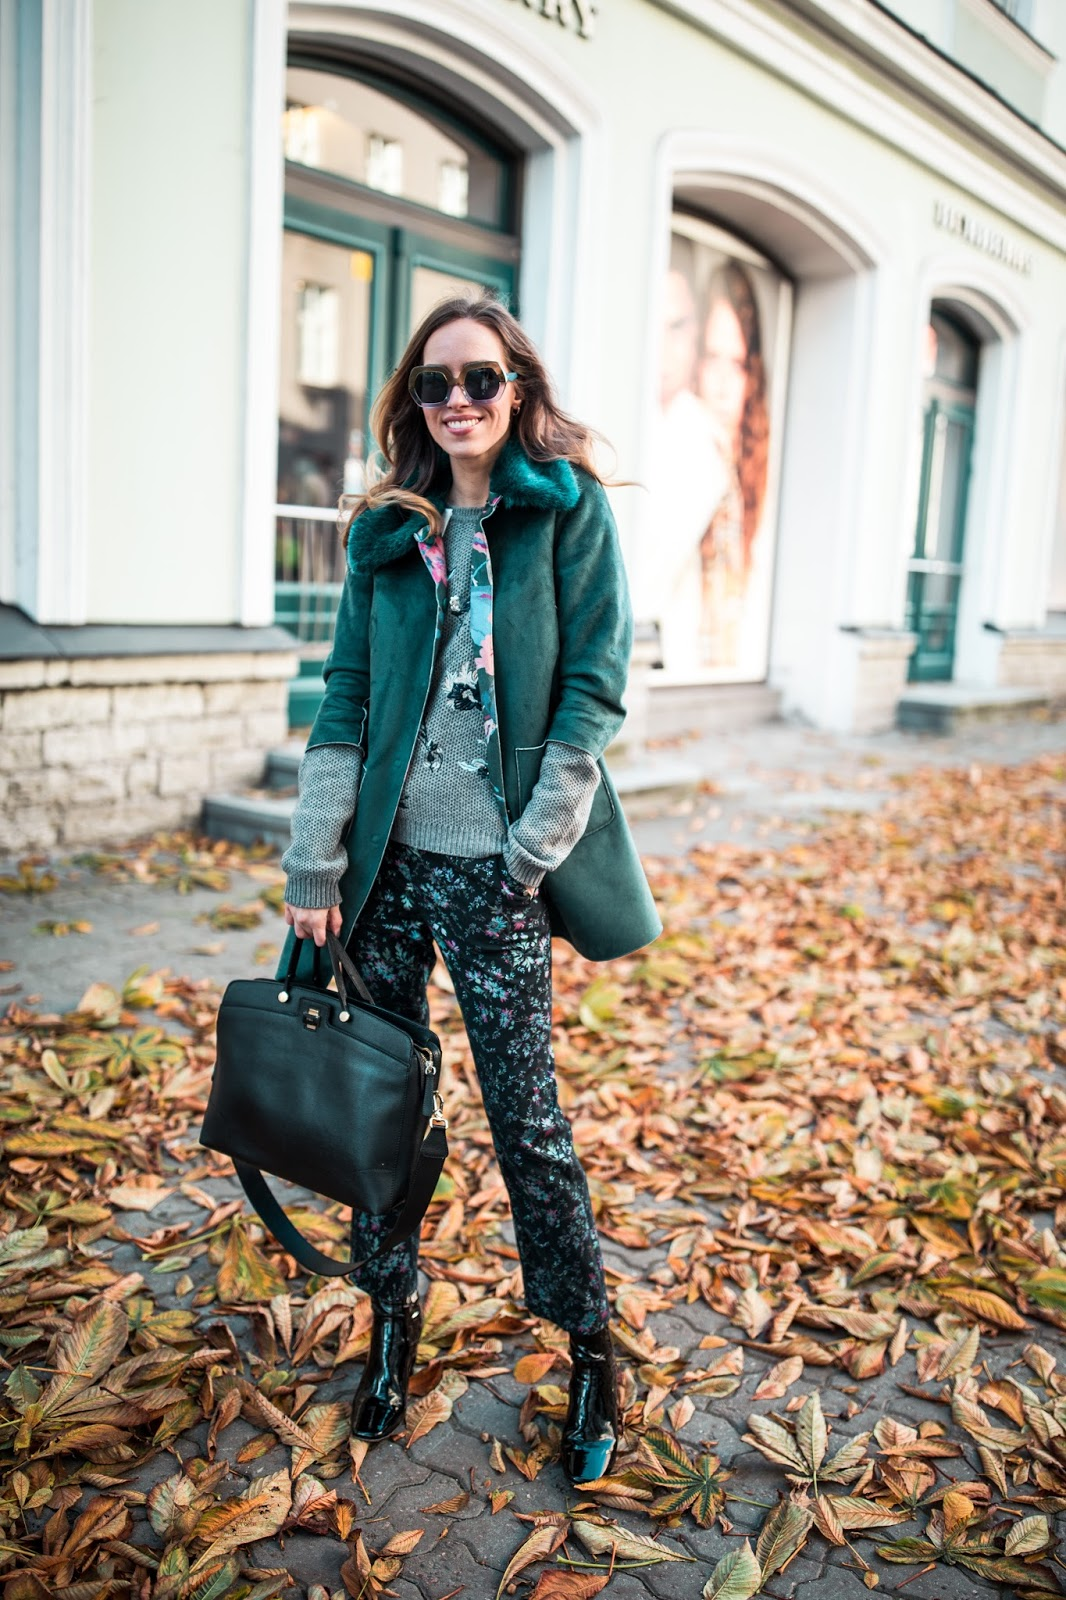 floral trousers sweater coat fall outfit